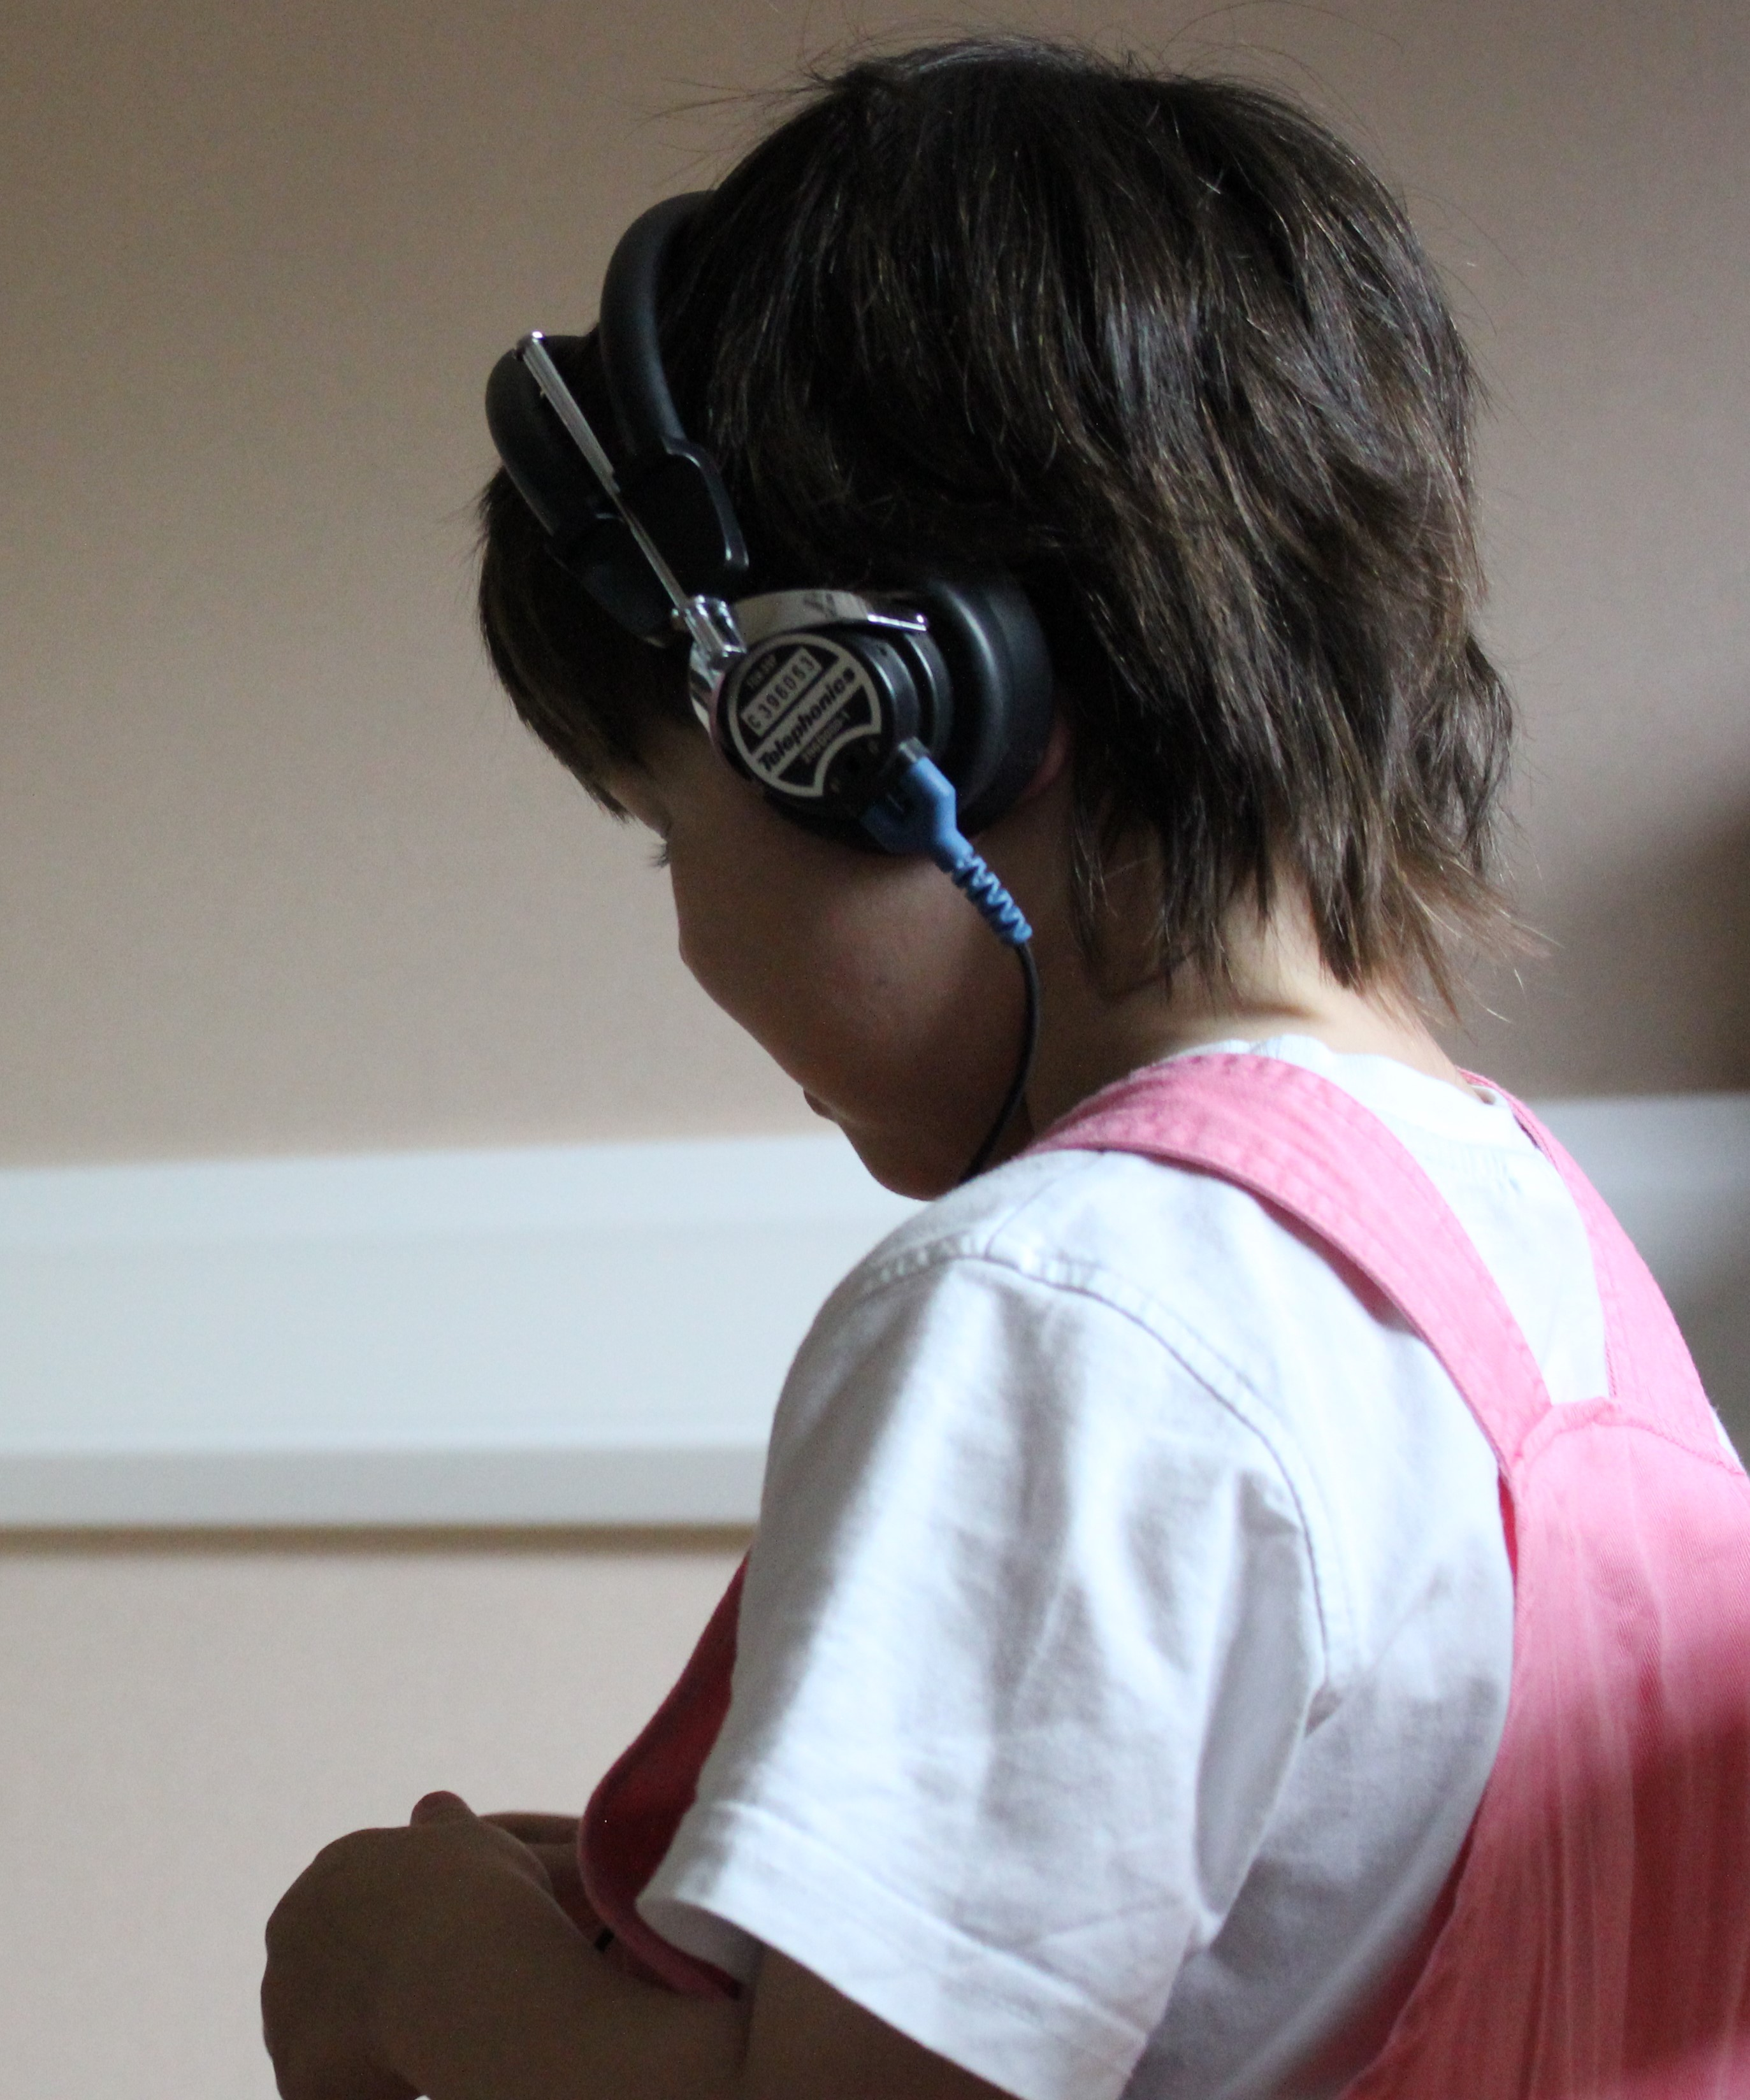 Hearing tests for children